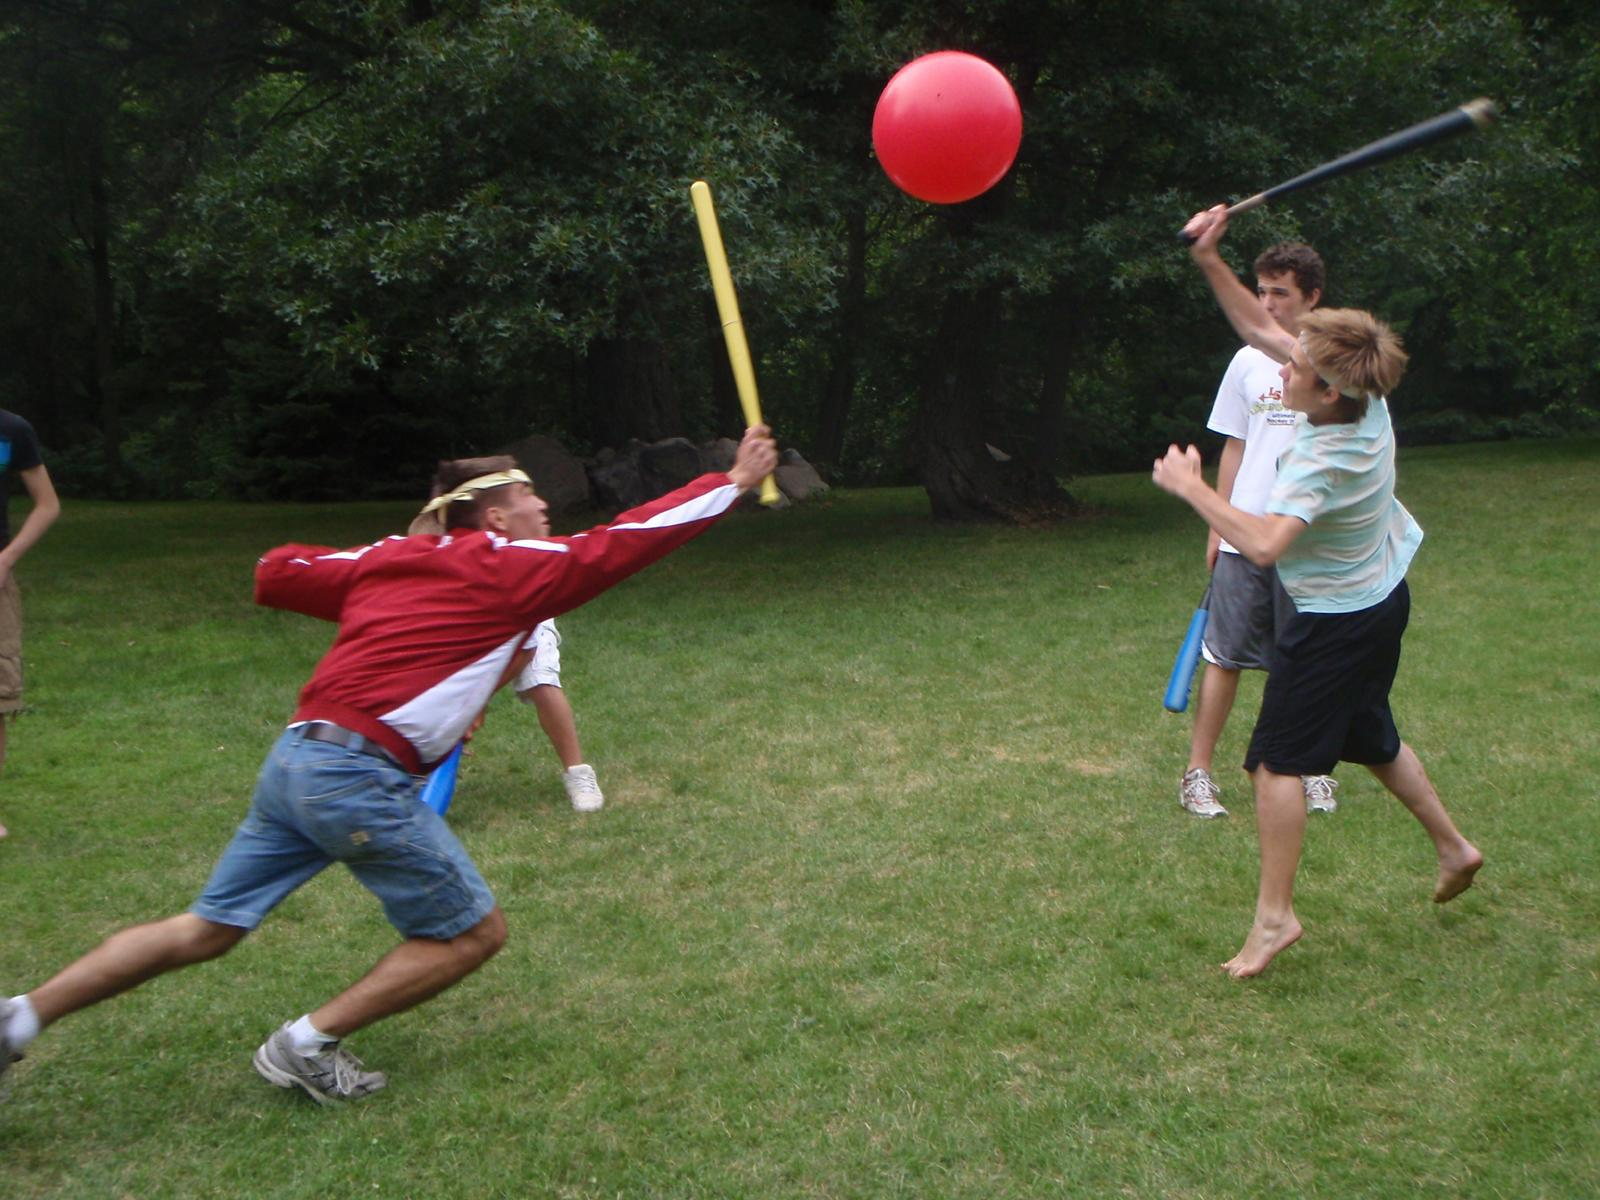 Johnball, a recently invented sport. Cody Troop vs. Ben Christiansen with onlooker Chris Borgen.